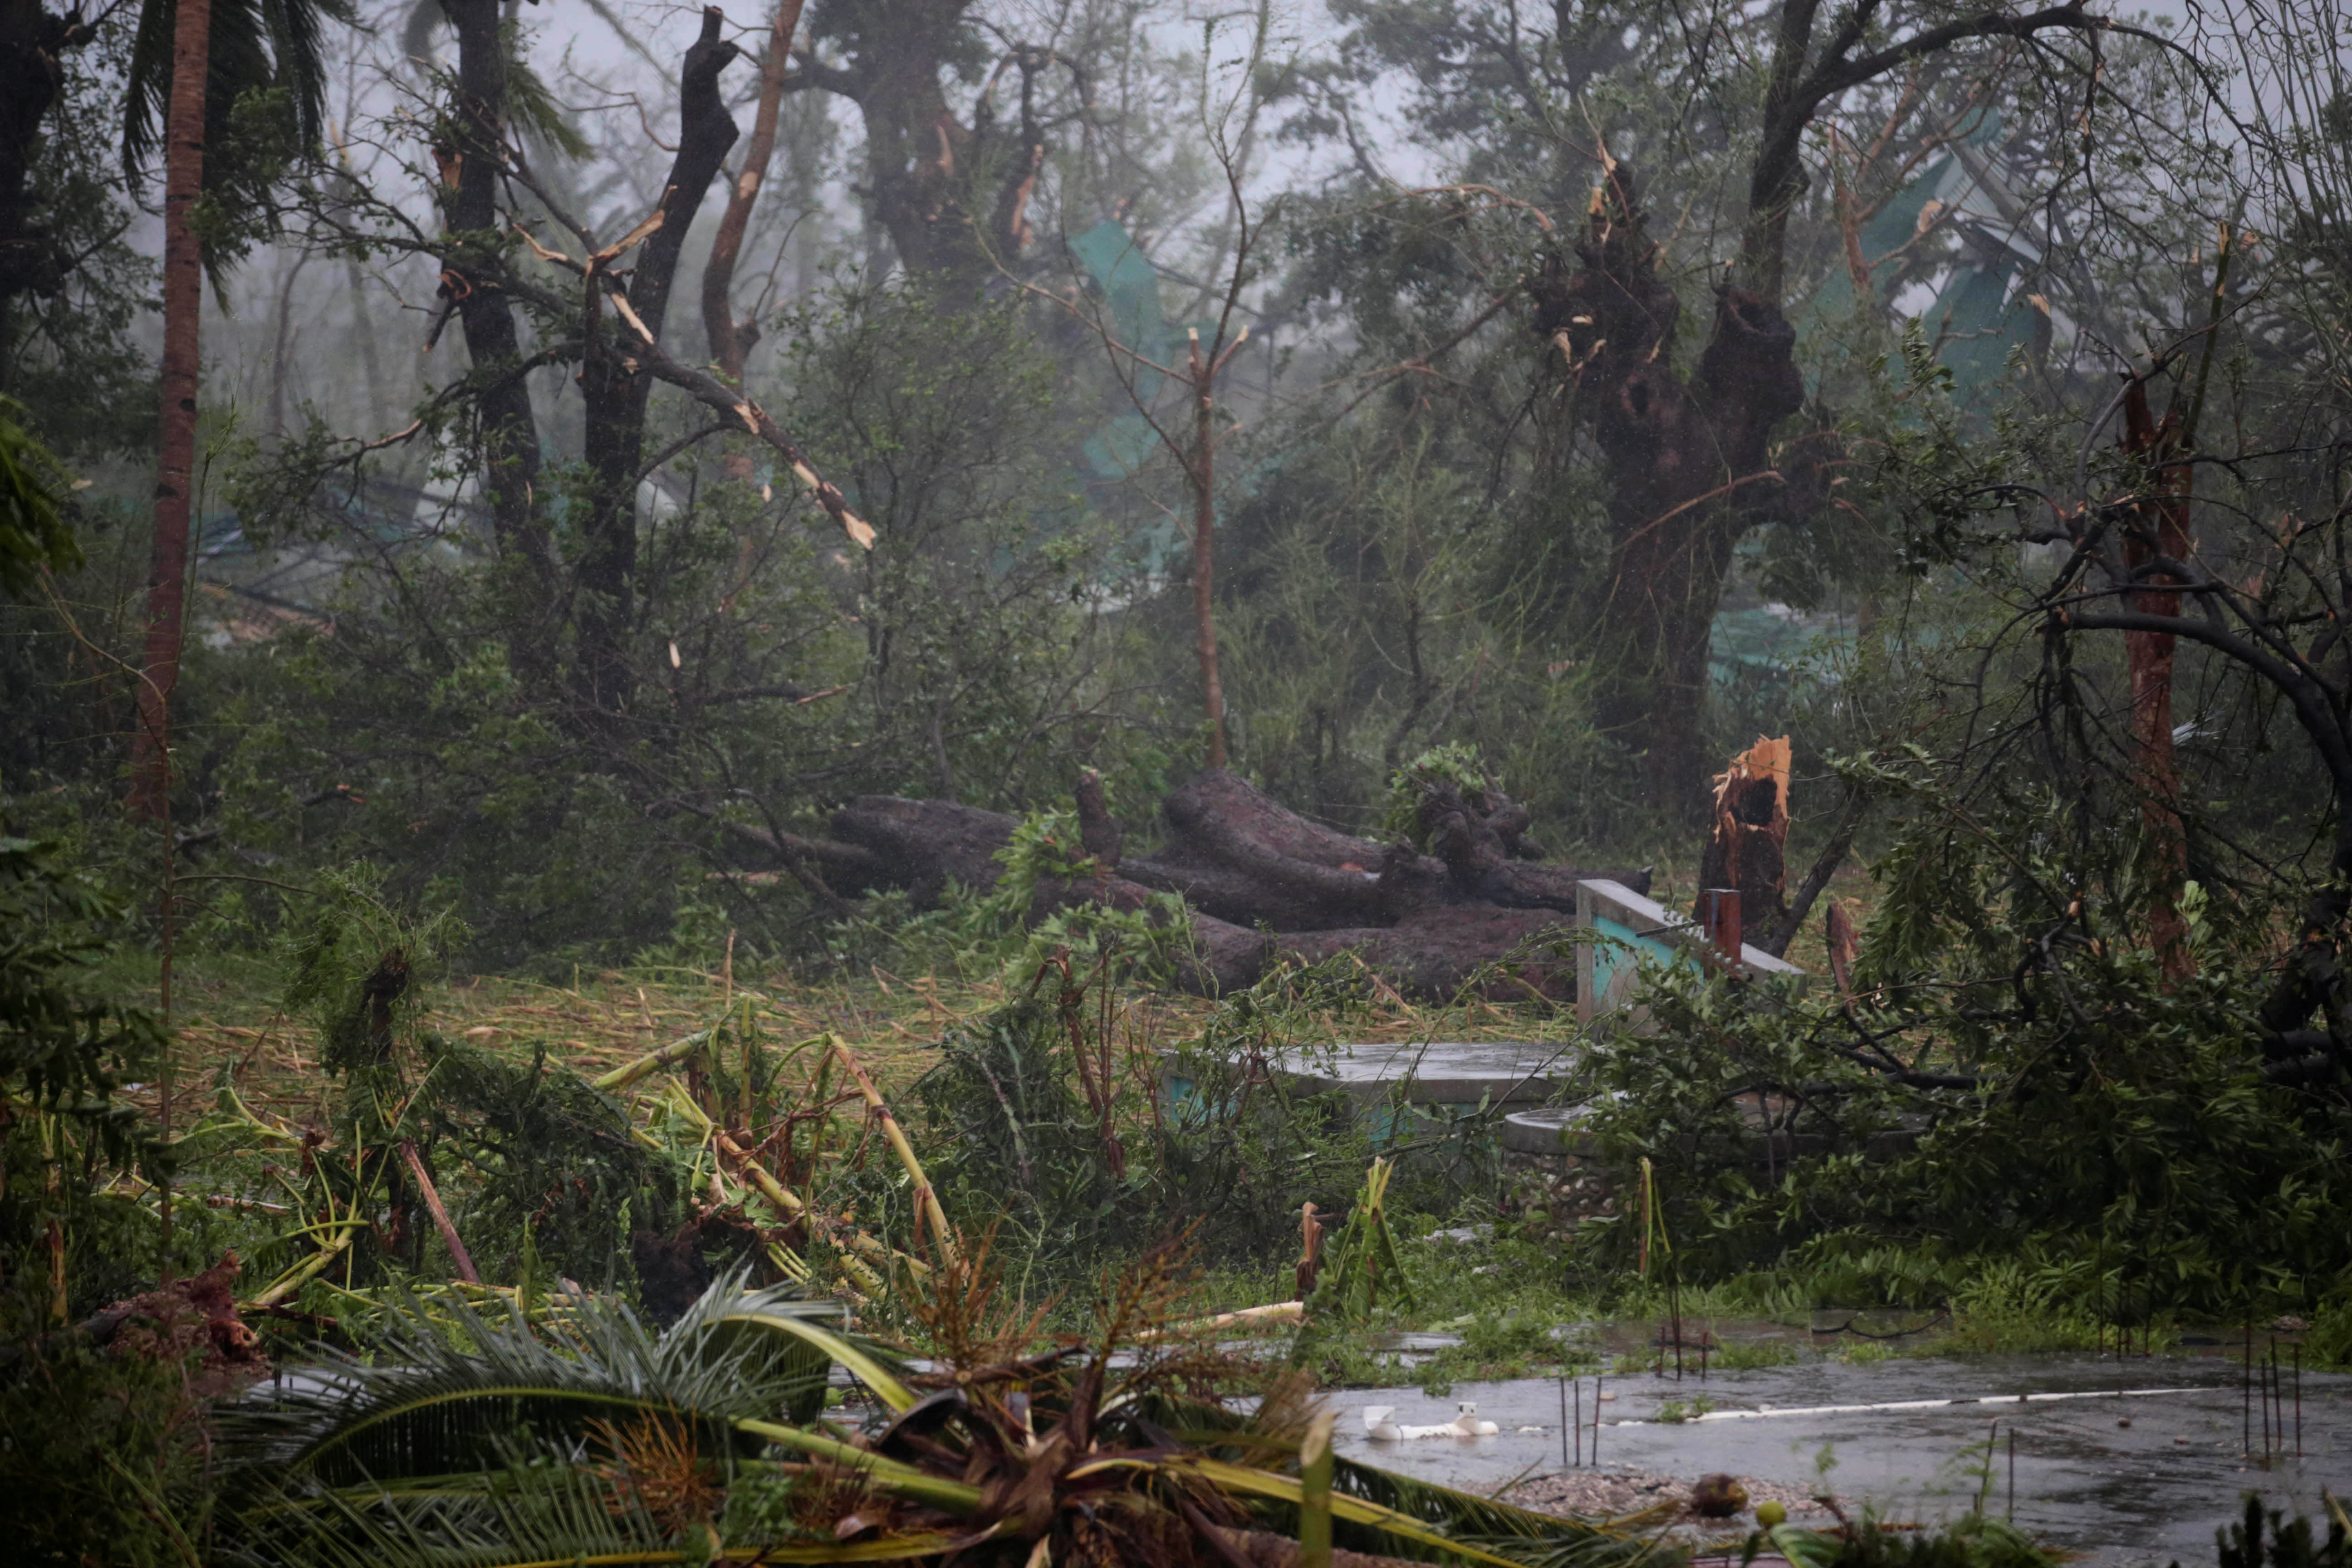 A view of trees damaged by the wind during Hurricane Matthew in Les Cayes, Haiti on Oct. 4.